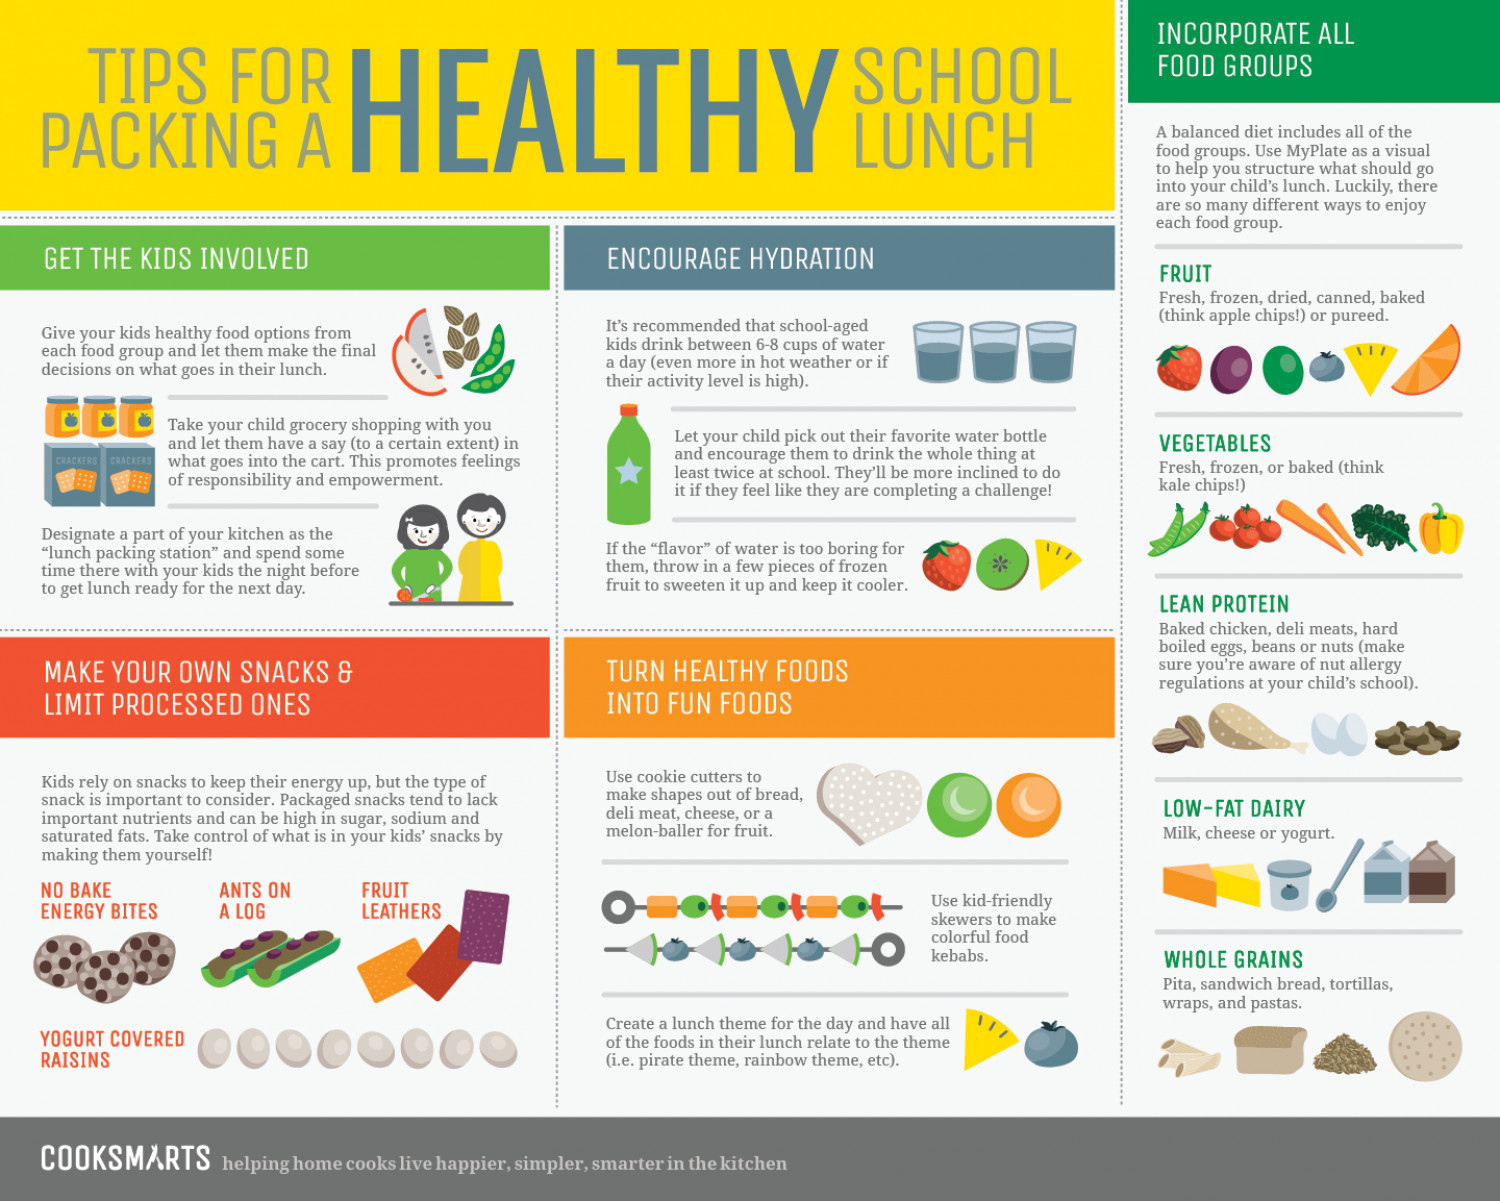 Tips For Packing A Healthy School Lunch